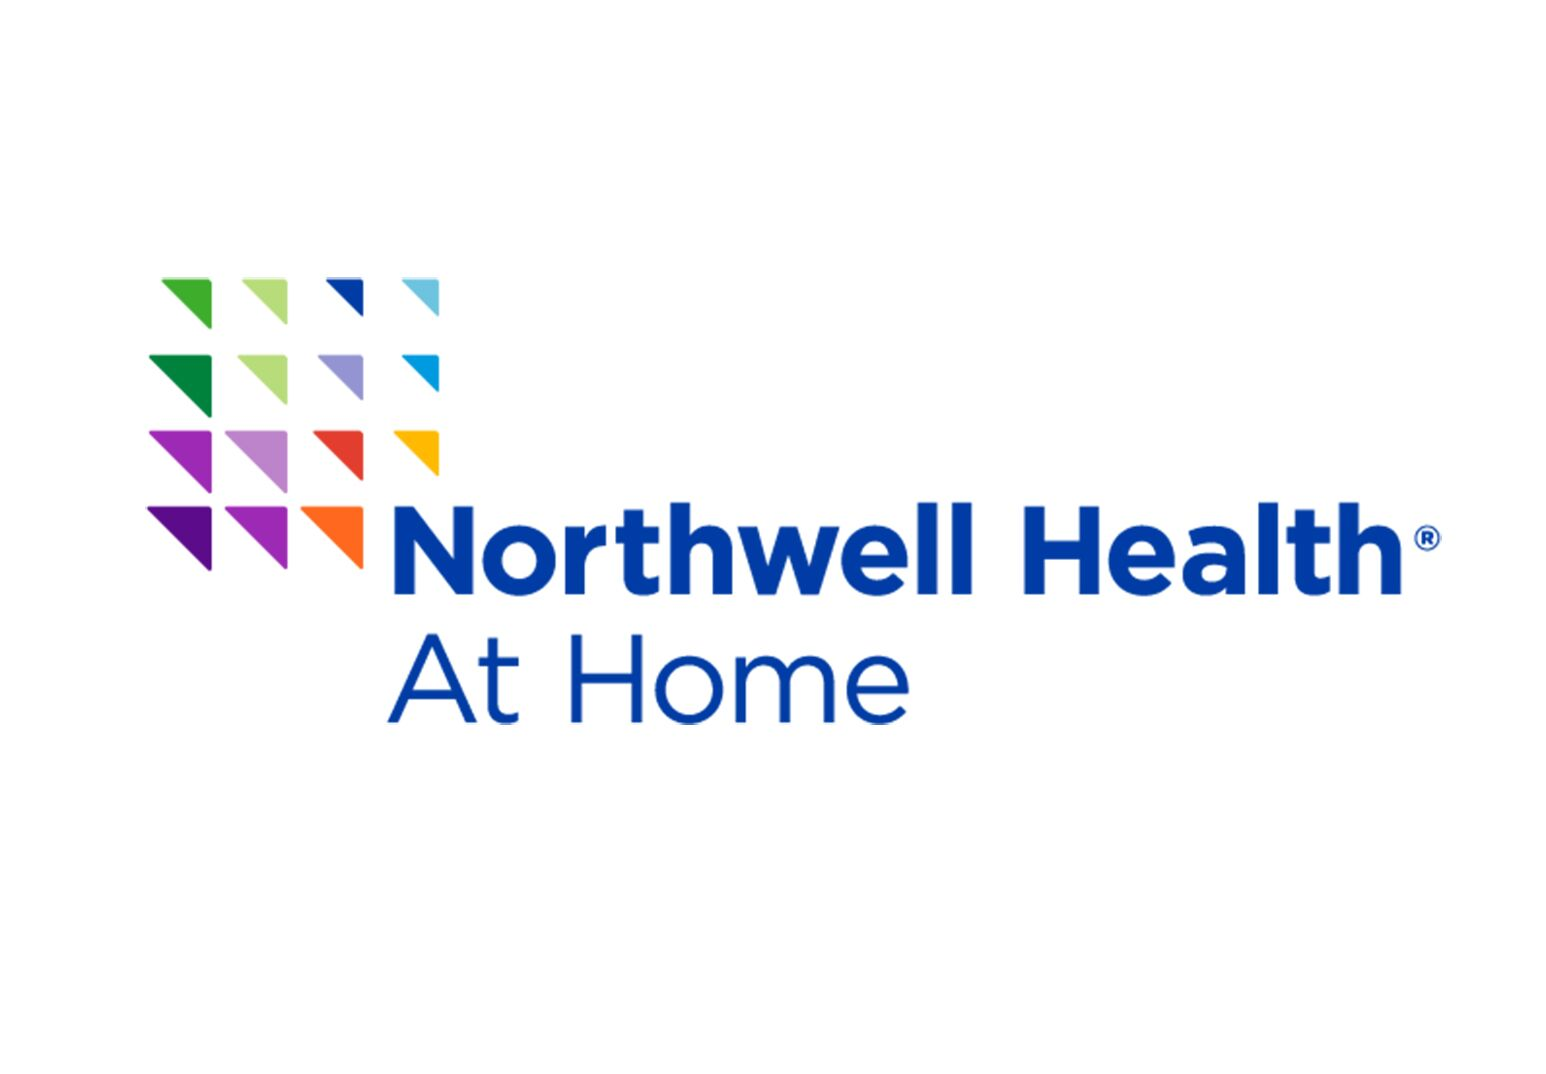 Northwell Health at Home.